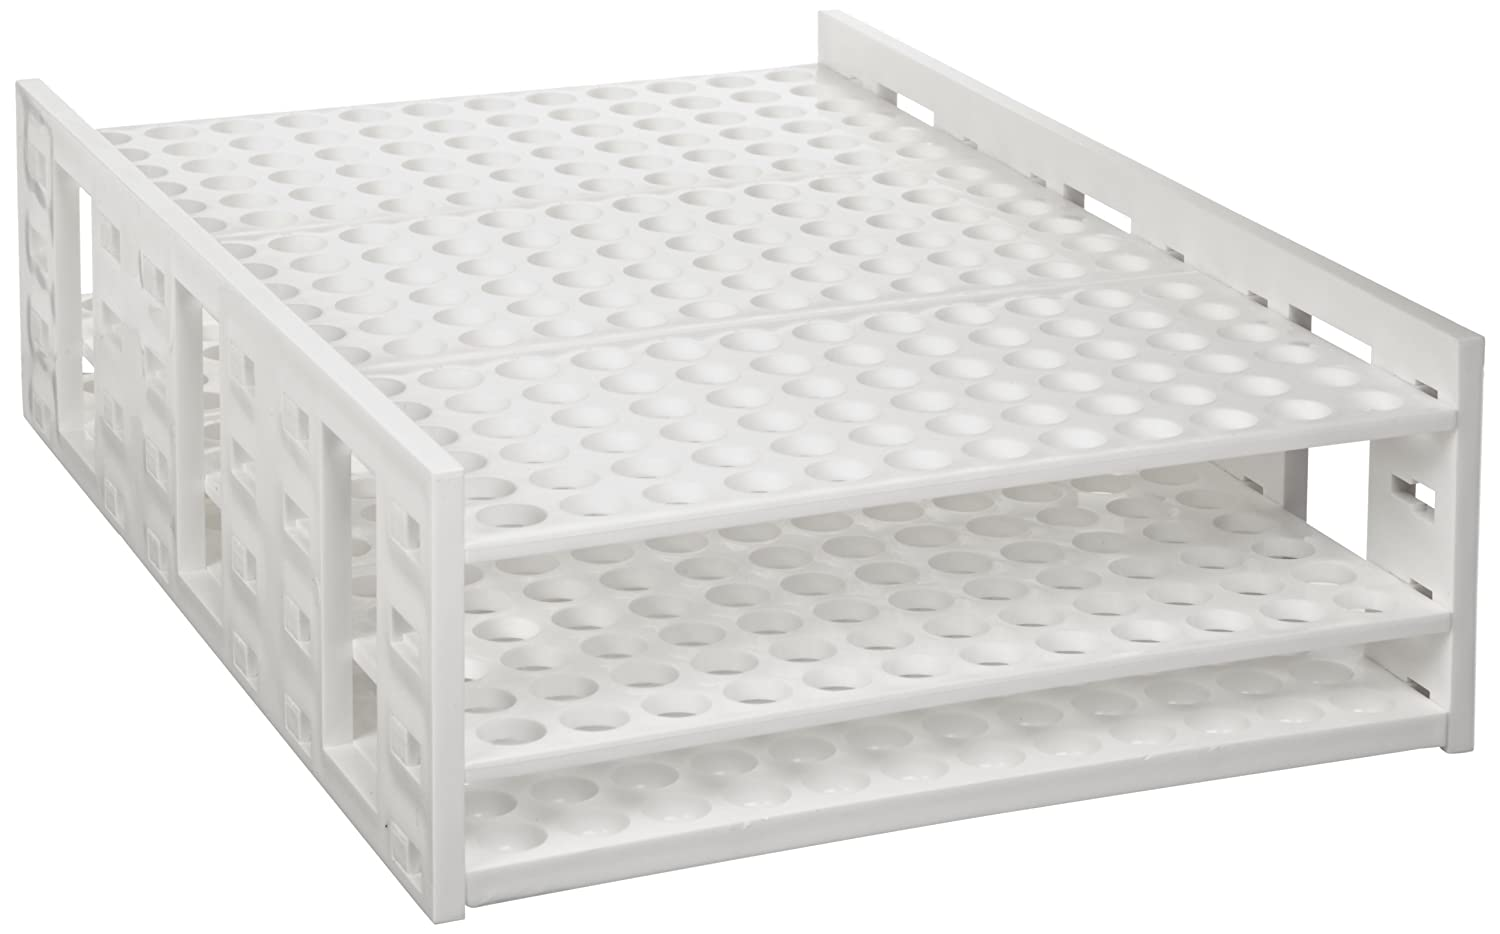 Heathrow Scientific HD24323E High quality new Polypropylene Limited Special Price Mega T Rack Tube 120